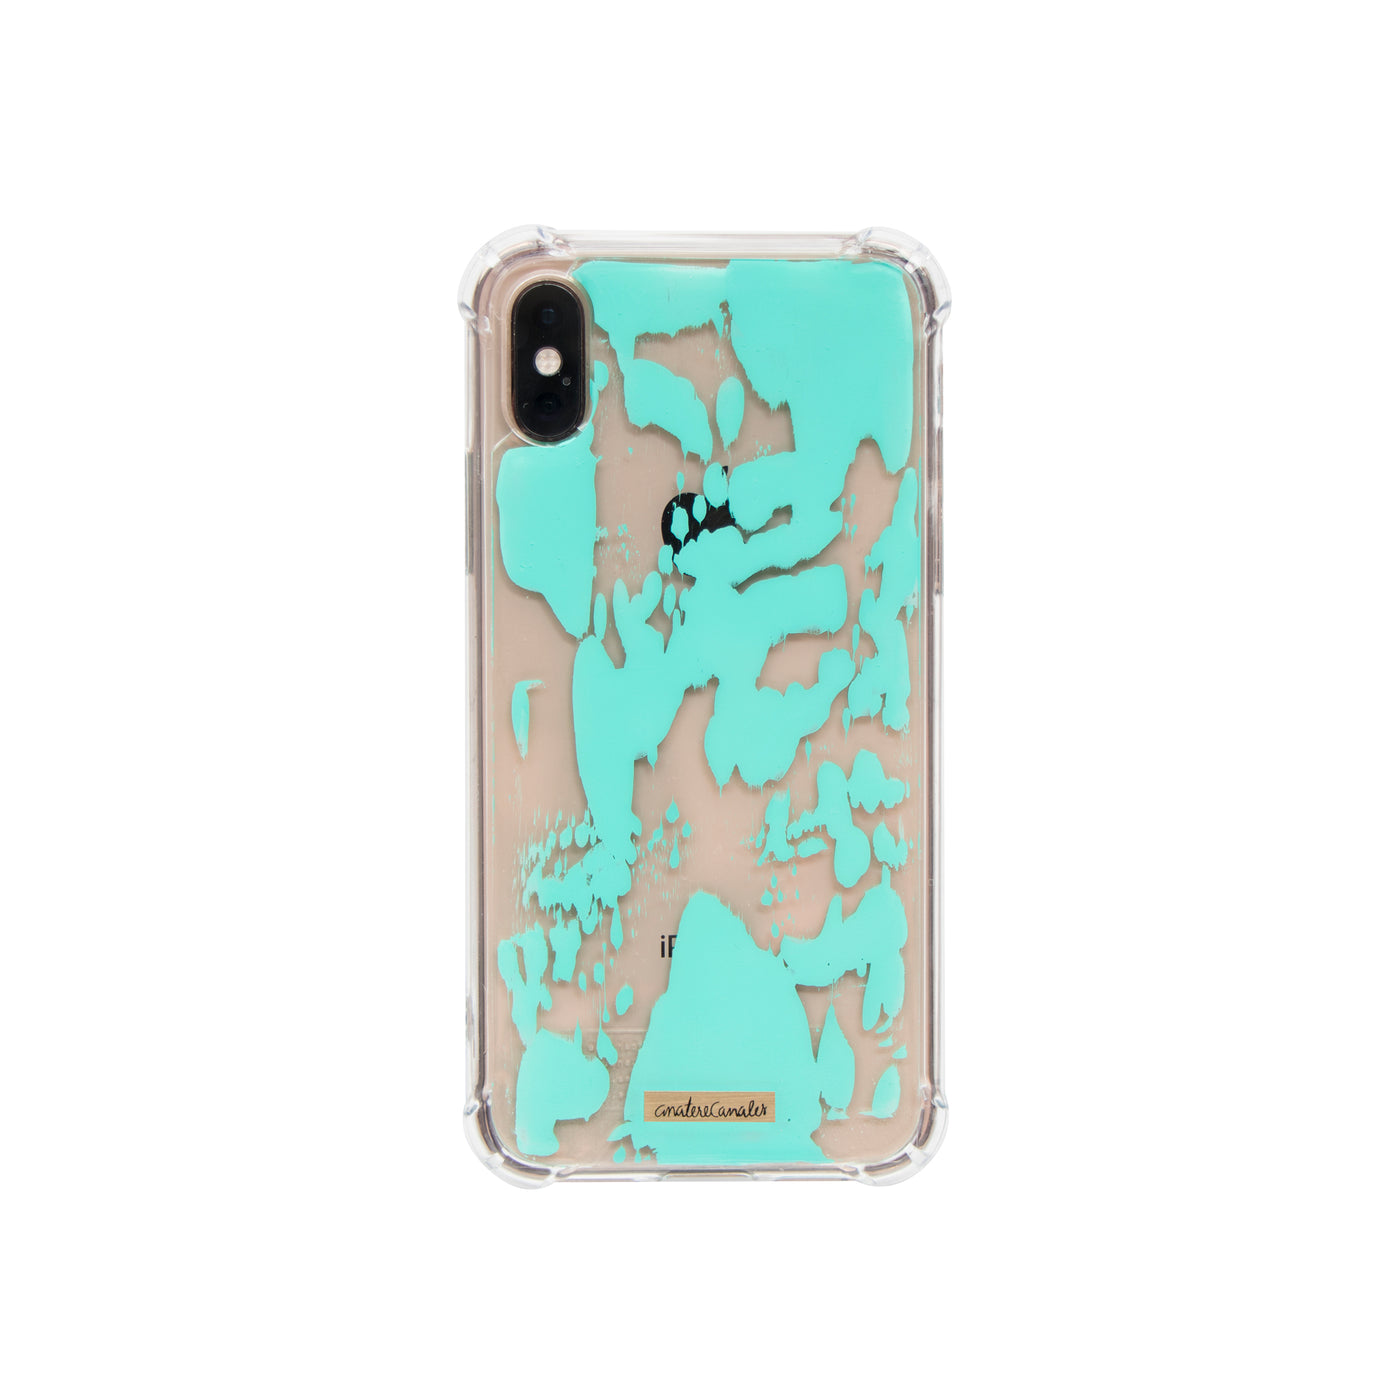 Cyan Vibes Case/Funda para iPhone/Samsung - Ana Tere Canales